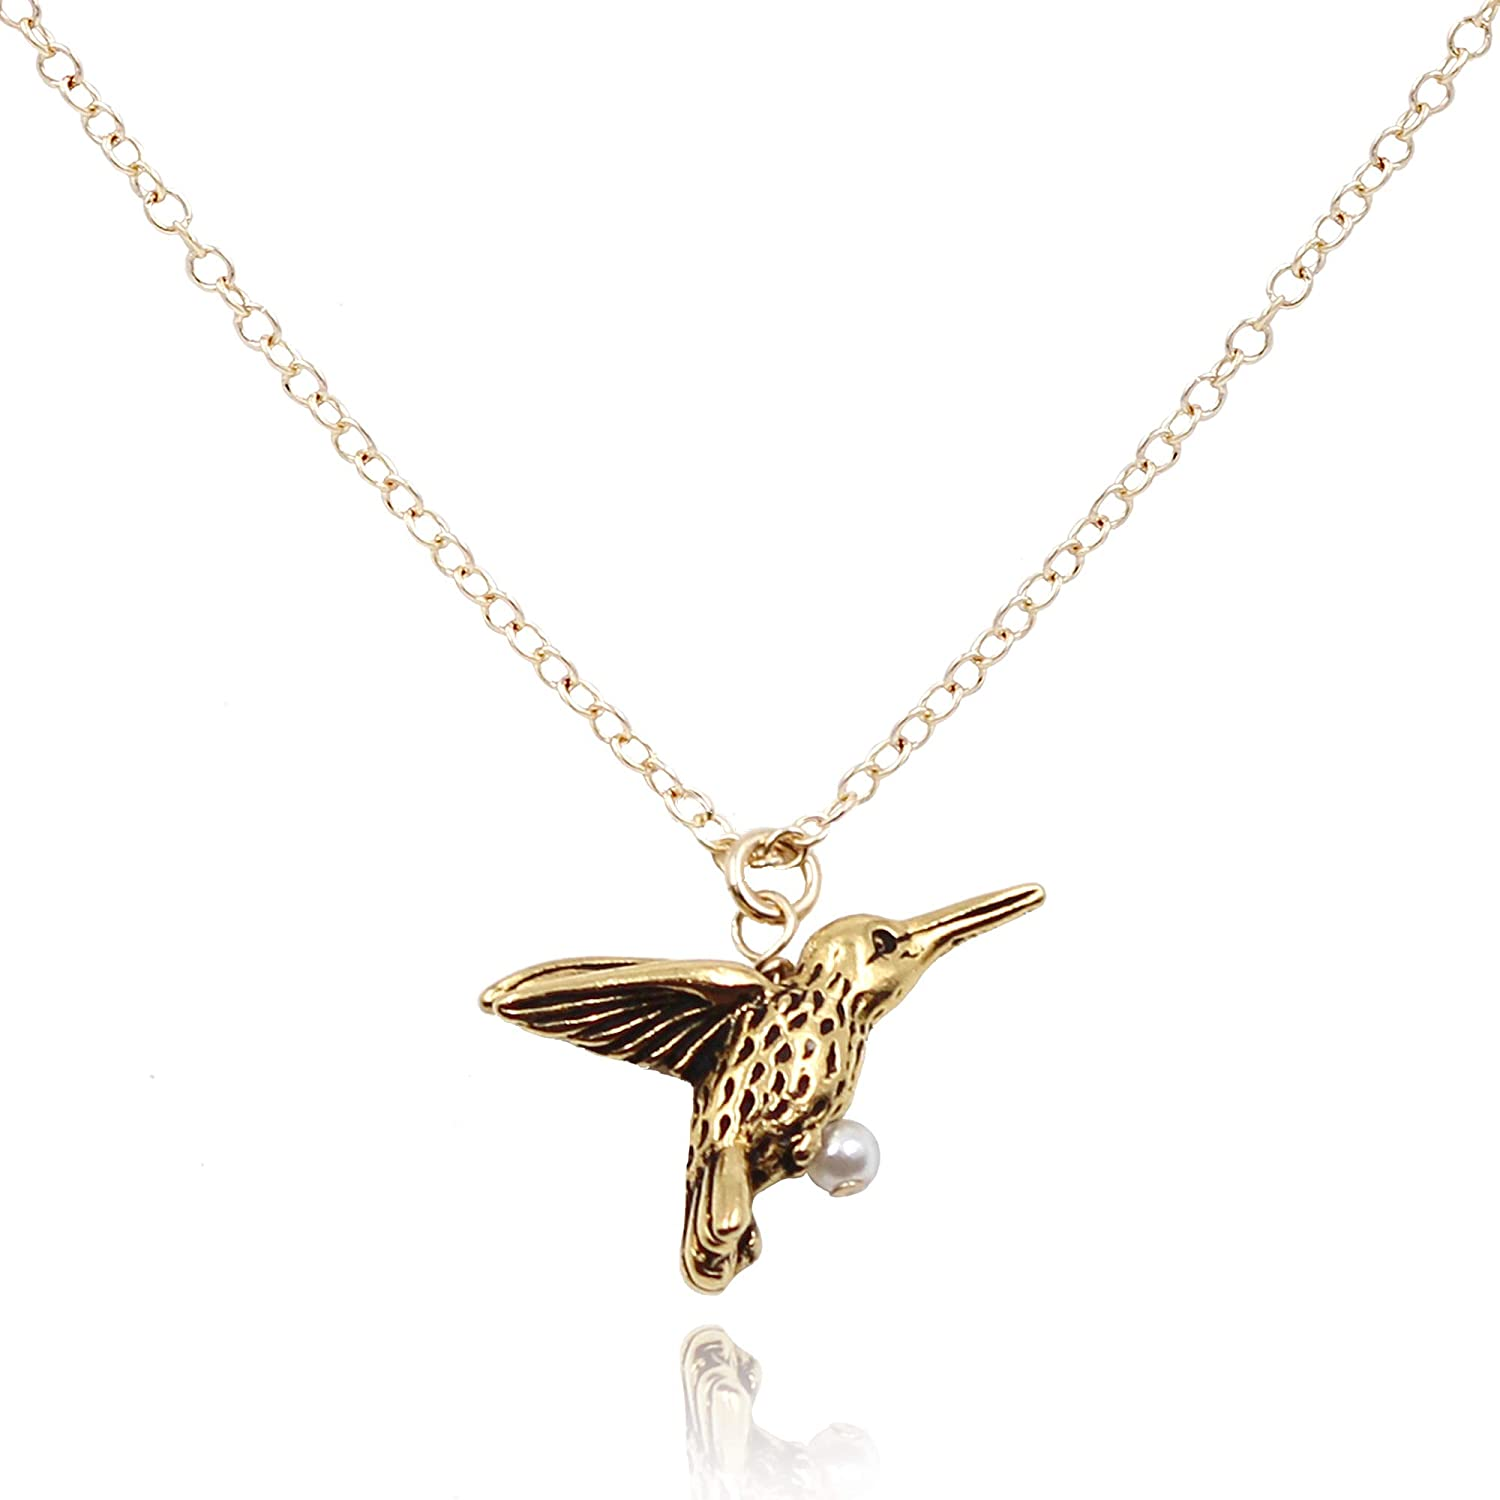 14K Gold Filled Chain MaeMae Hummingbird Pendant Necklace 16-18